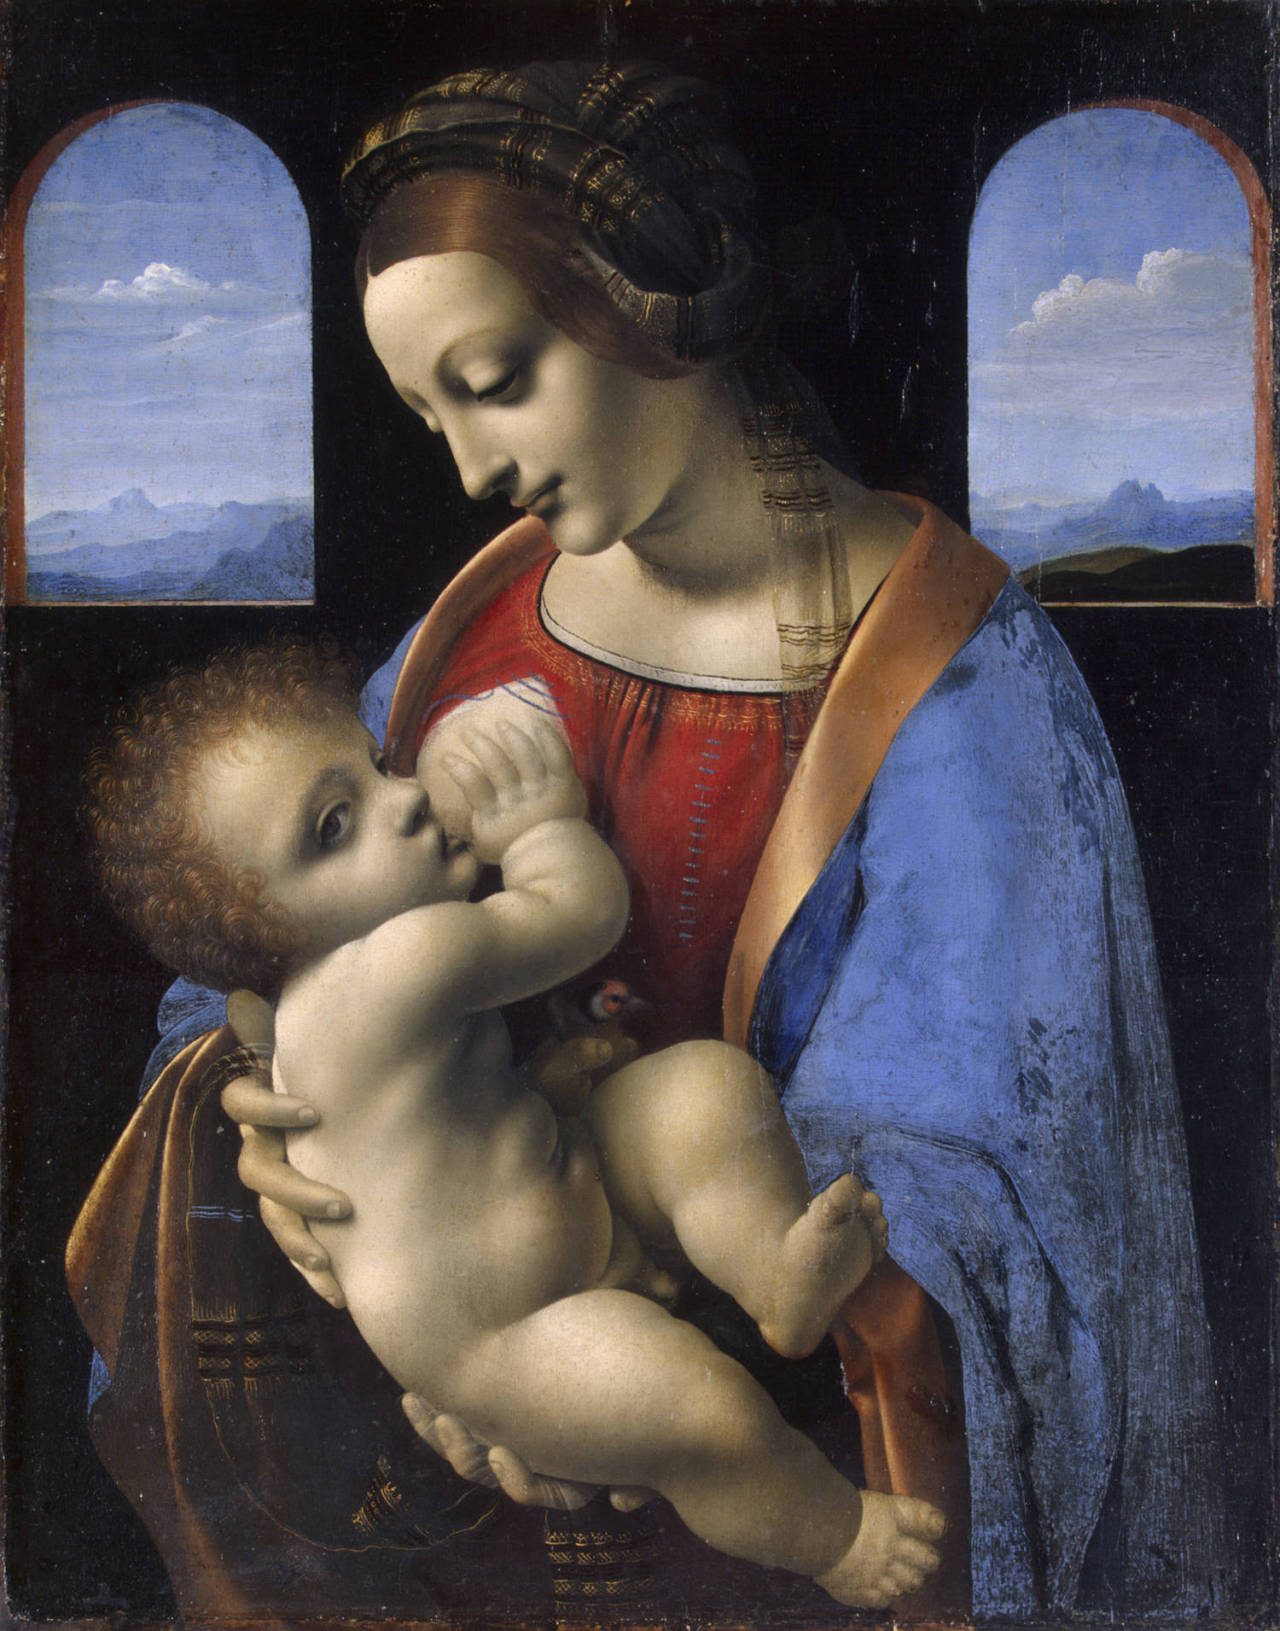 Madonna And Child (Madonna Litta) By Leonardo Da Vinci, Circa 1491-1495